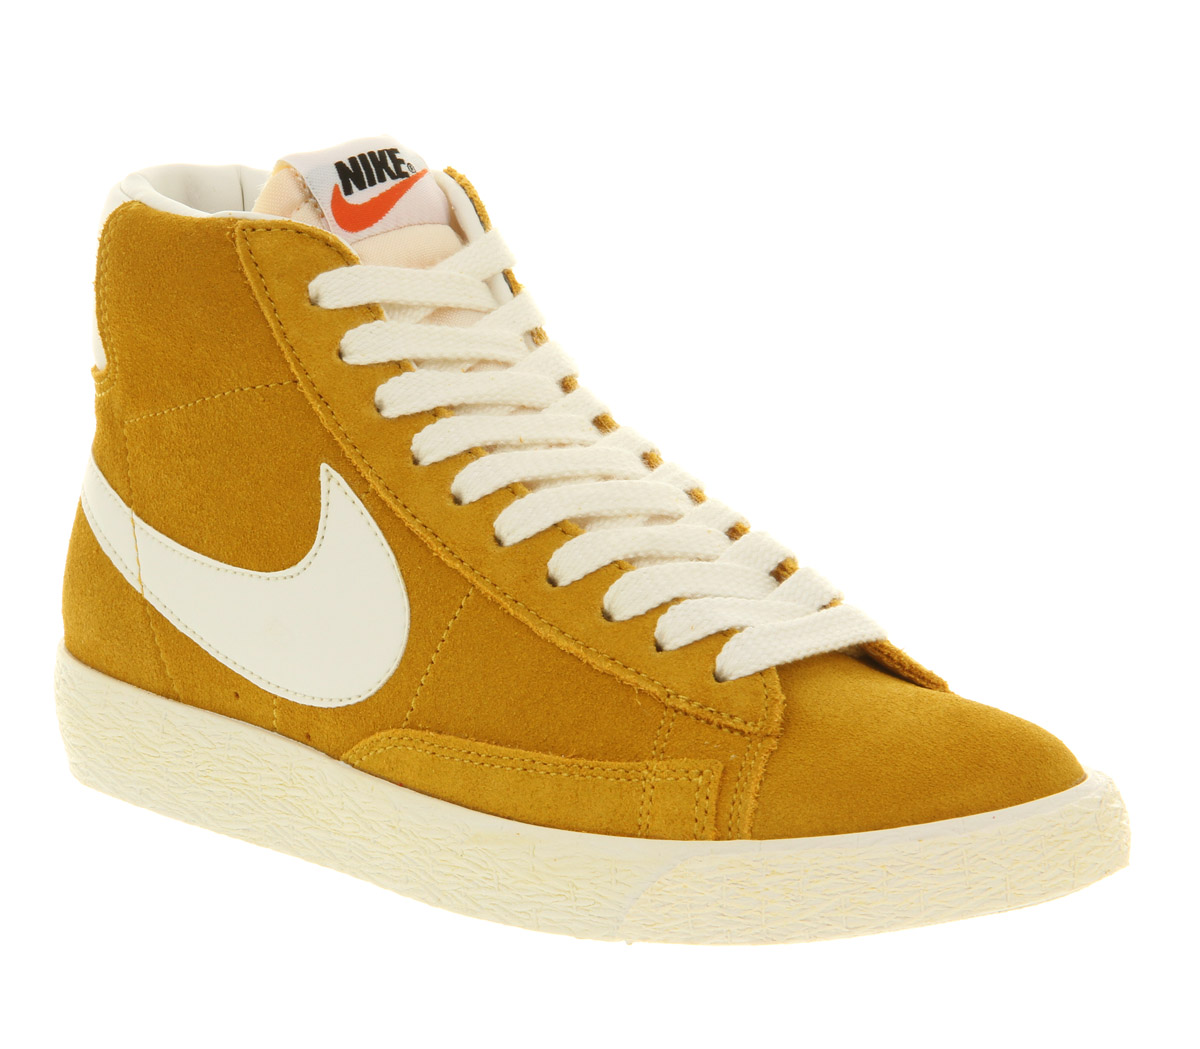 purchase cheap 89eed b5065 Nike Blazer Hi Suede Vintage Gold Dart Sail Exclusive in Yellow for ...